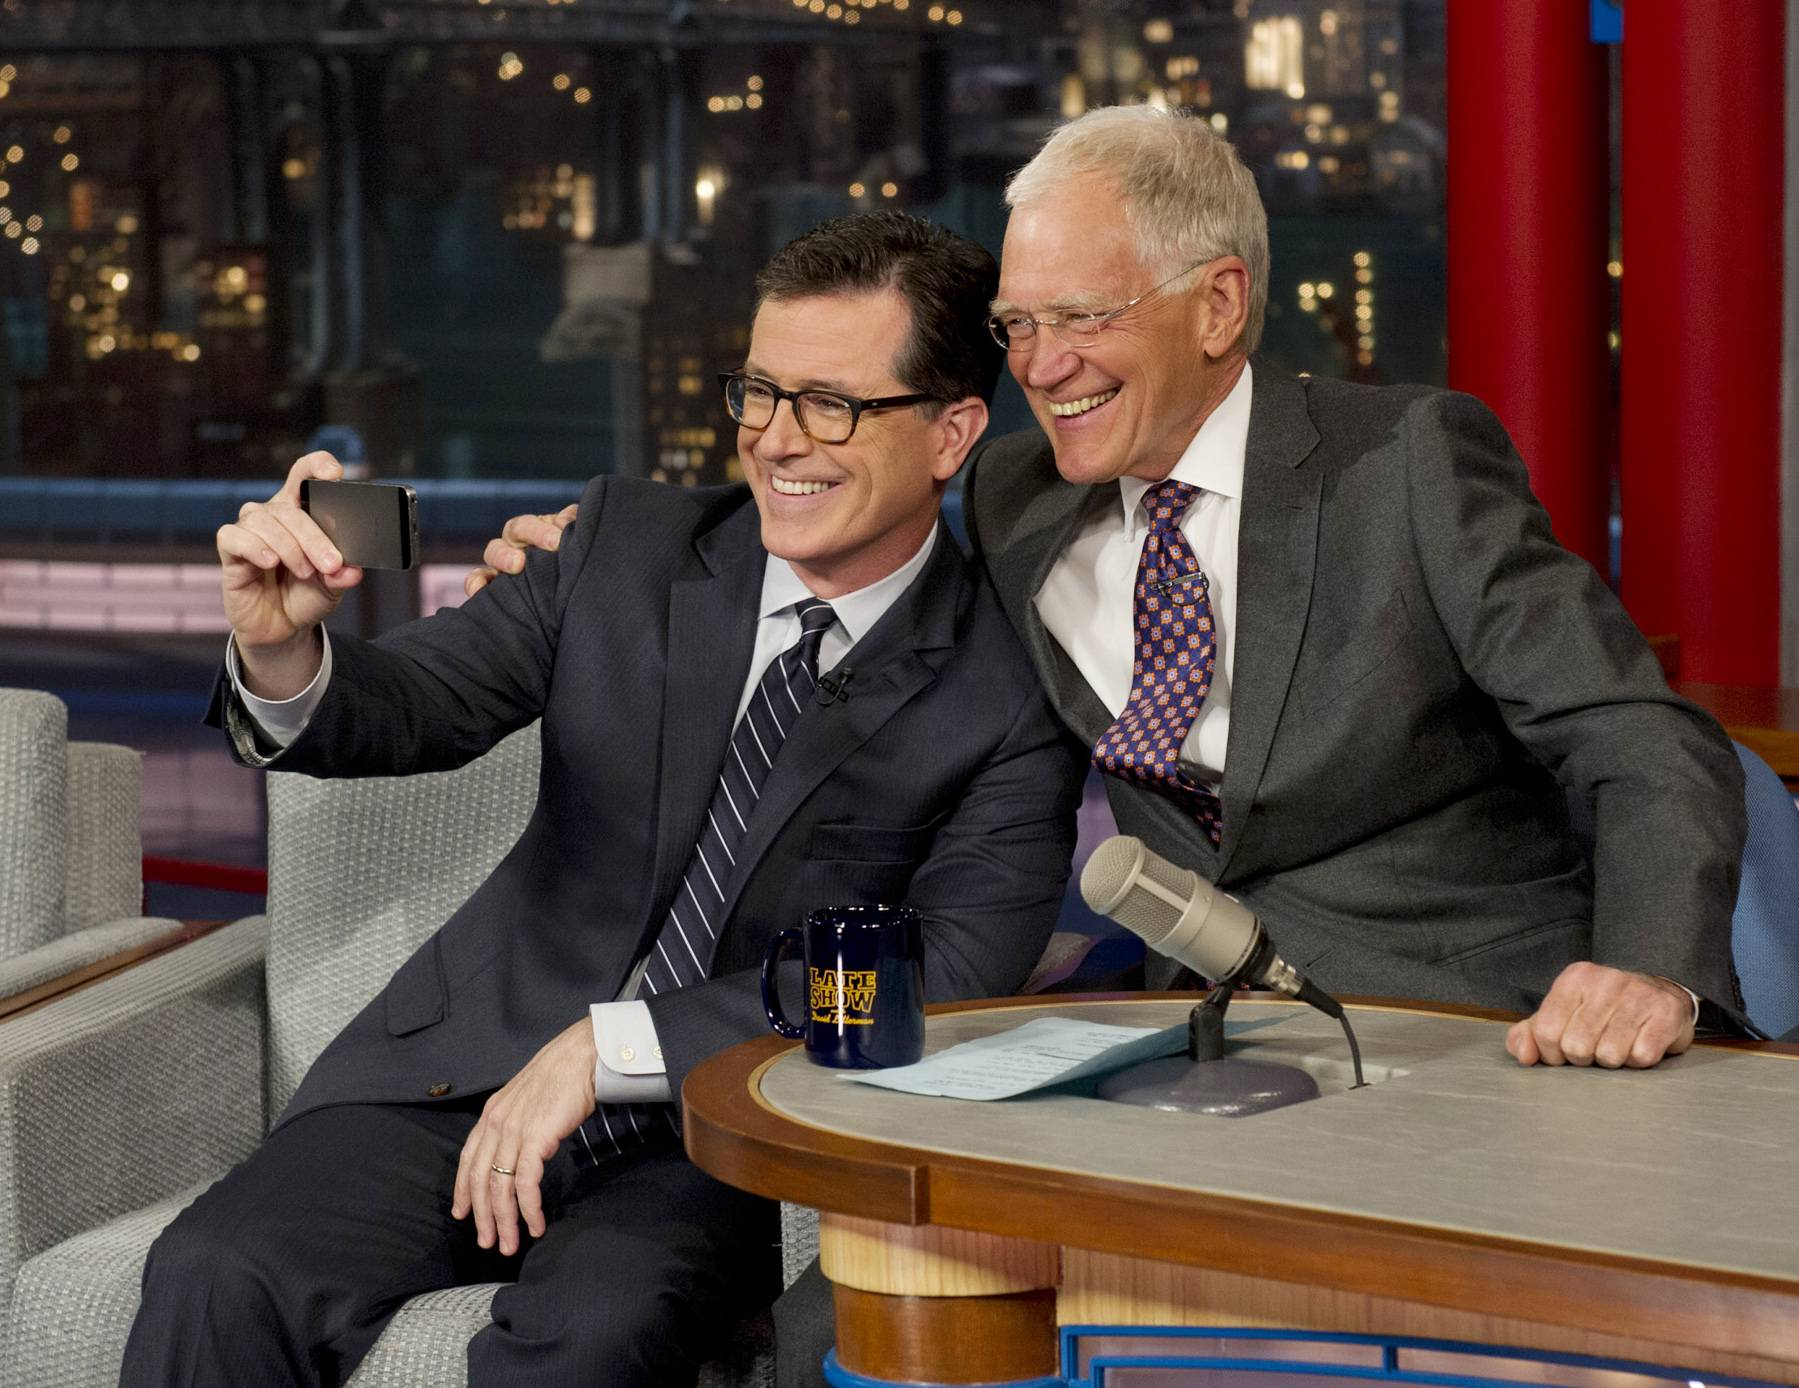 "Comedy Central's Stephen Colbert takes a selfie with host David Letterman on the set of the ""Late Show With David Letterman"" Tuesday in New York. This was Colbert's first visit to the show since CBS announced that he will succeed Letterman as host when he retires in 2015."